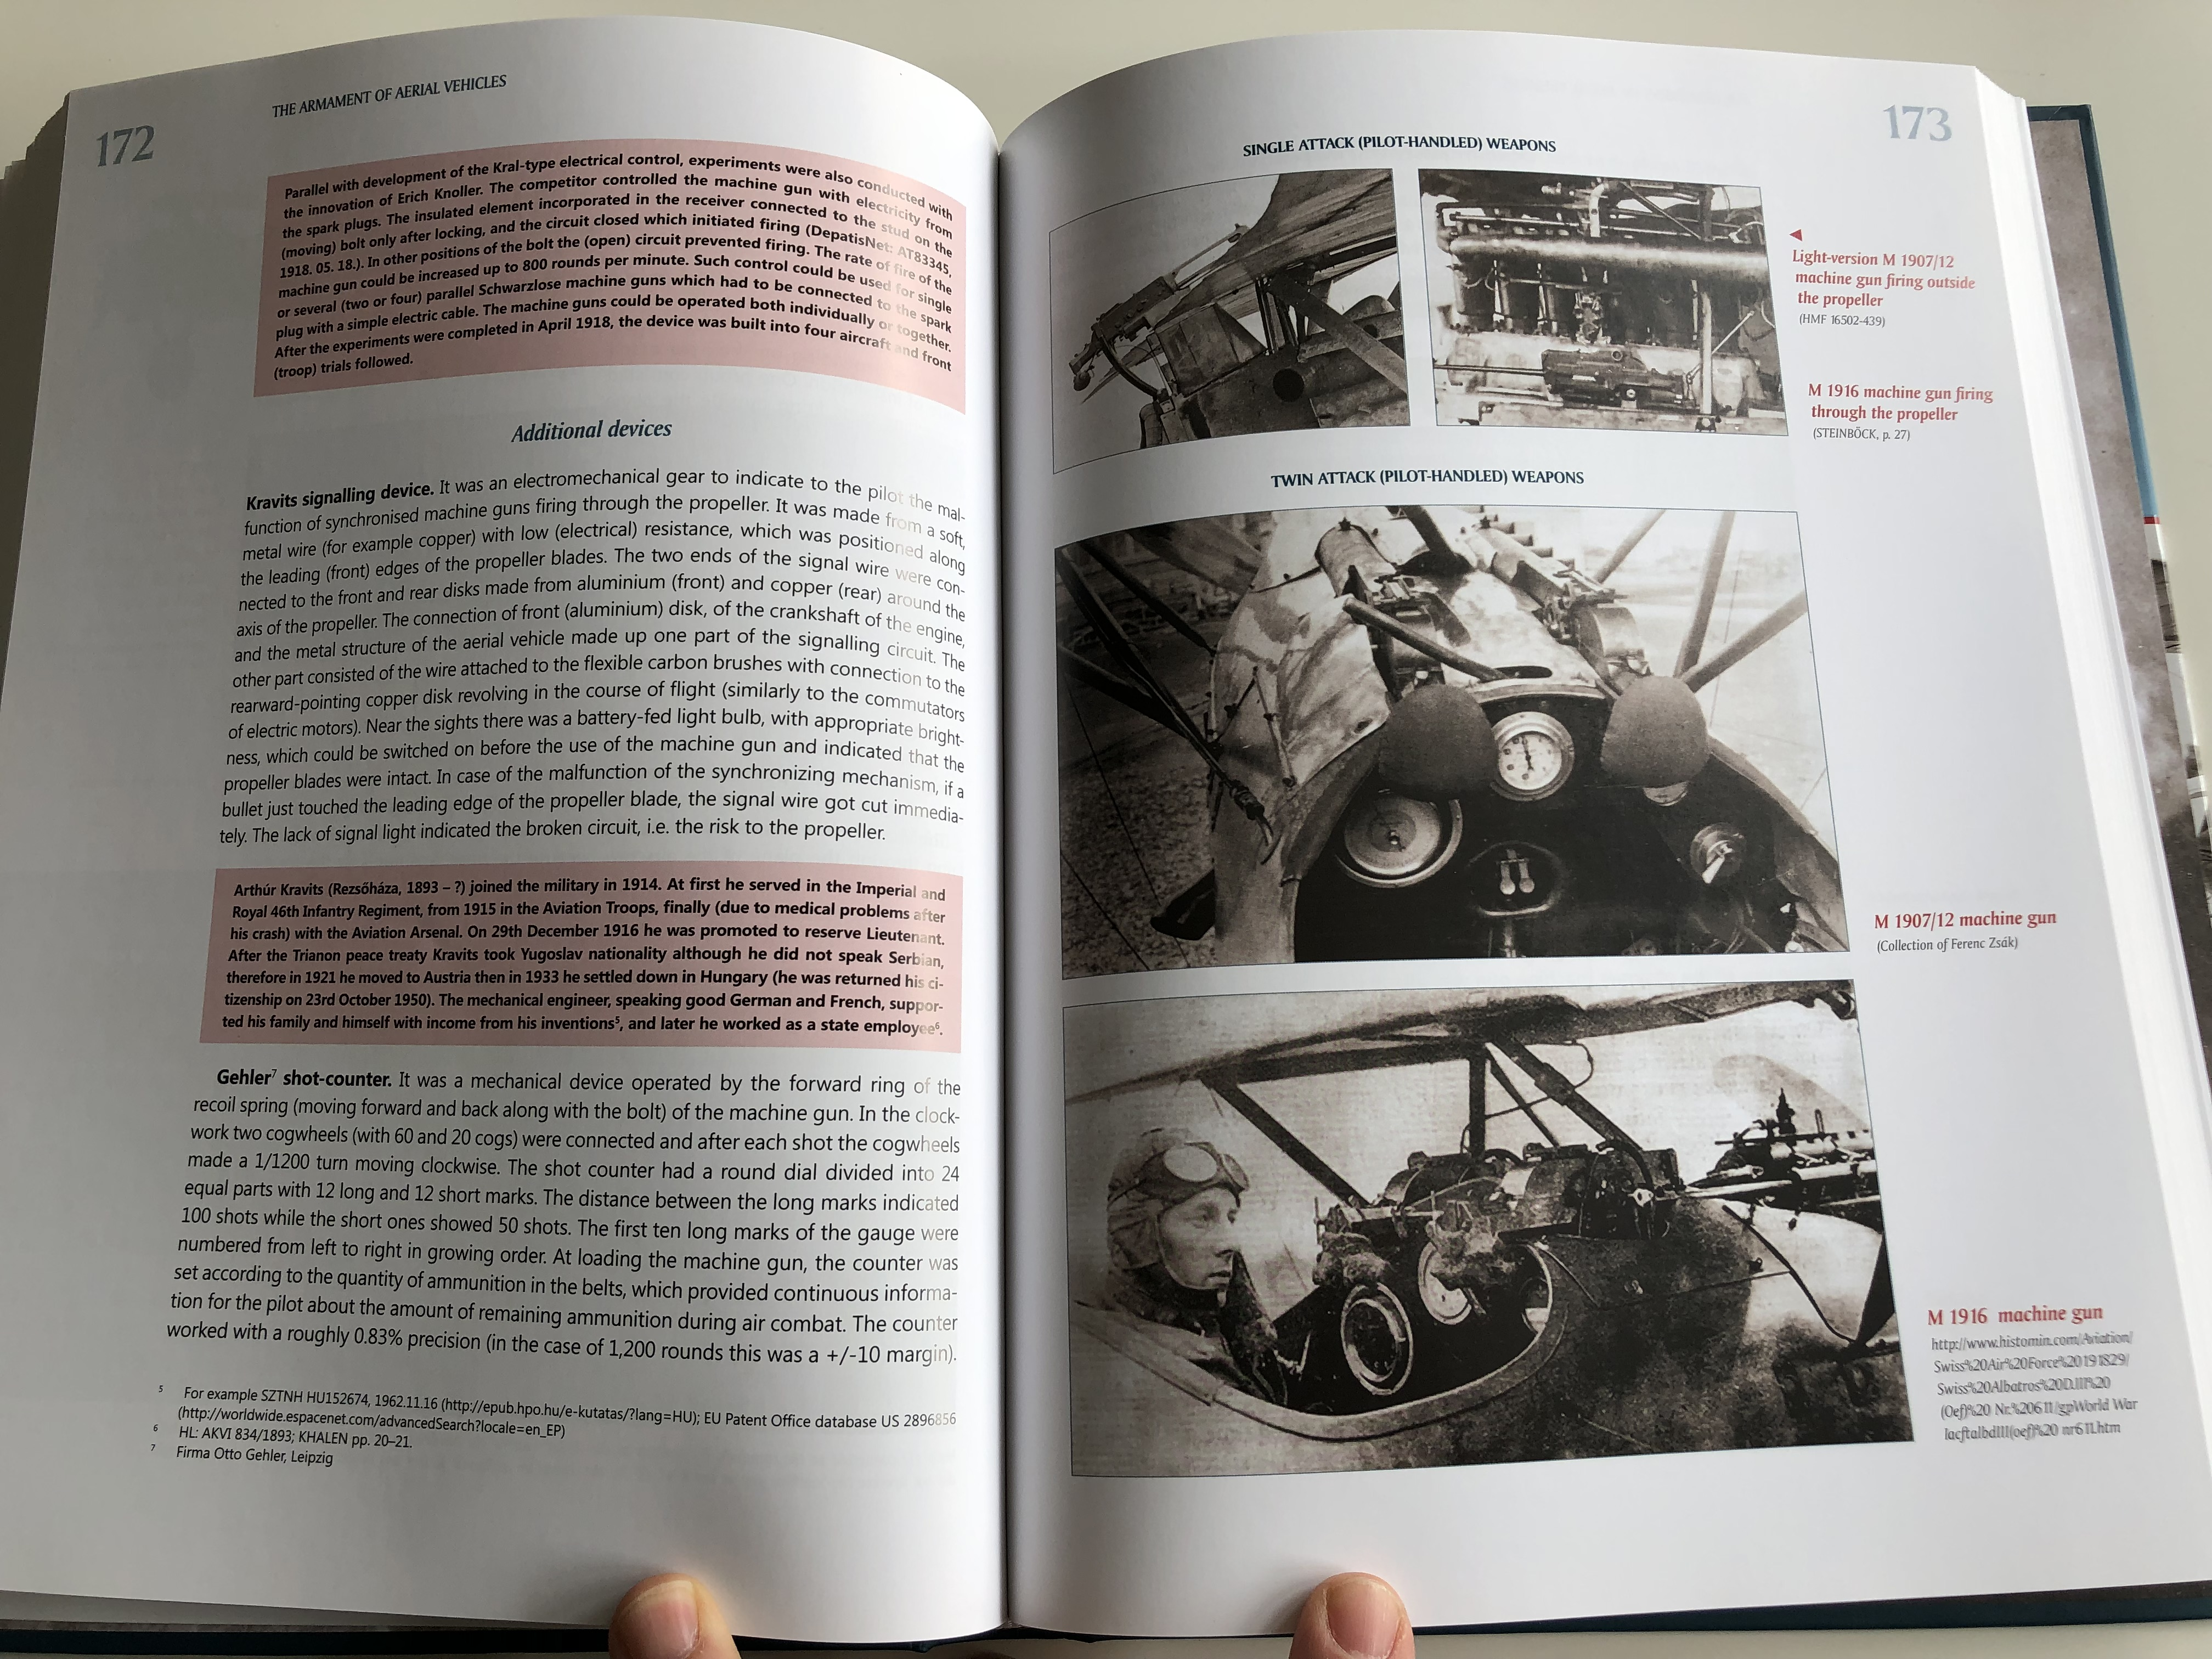 flying-aces-1914-1918-the-most-successful-aviators-of-the-austro-hungarian-monarchy-and-their-equipment-hardcover-2016-hm-zr-nyi-kiad-13-.jpg